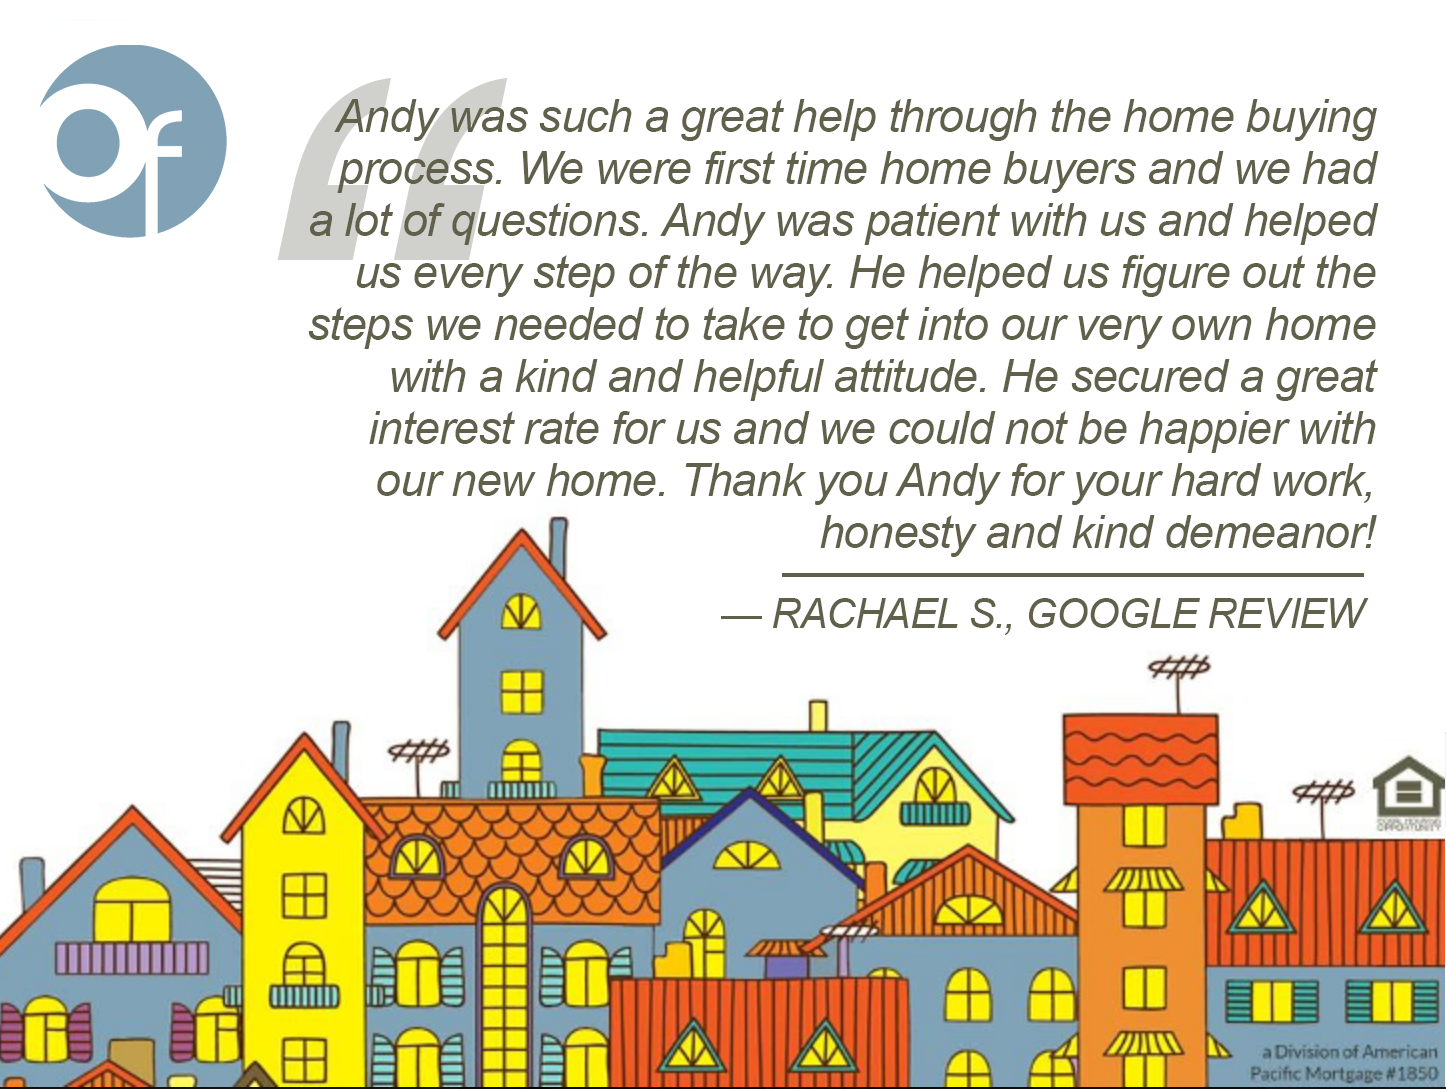 Andy was such a great help through the home buying process. We were first time home buyers and we had a lot of questions. Andy was patient with us and helped us every step of the way. He helped us figure out the steps we needed to take to get into our very own home with a kind and helpful attitude. He secured a great interest rate for us and we could not be happier with our new home. Thank you Andy for your hard work, honesty and kind demeanor!